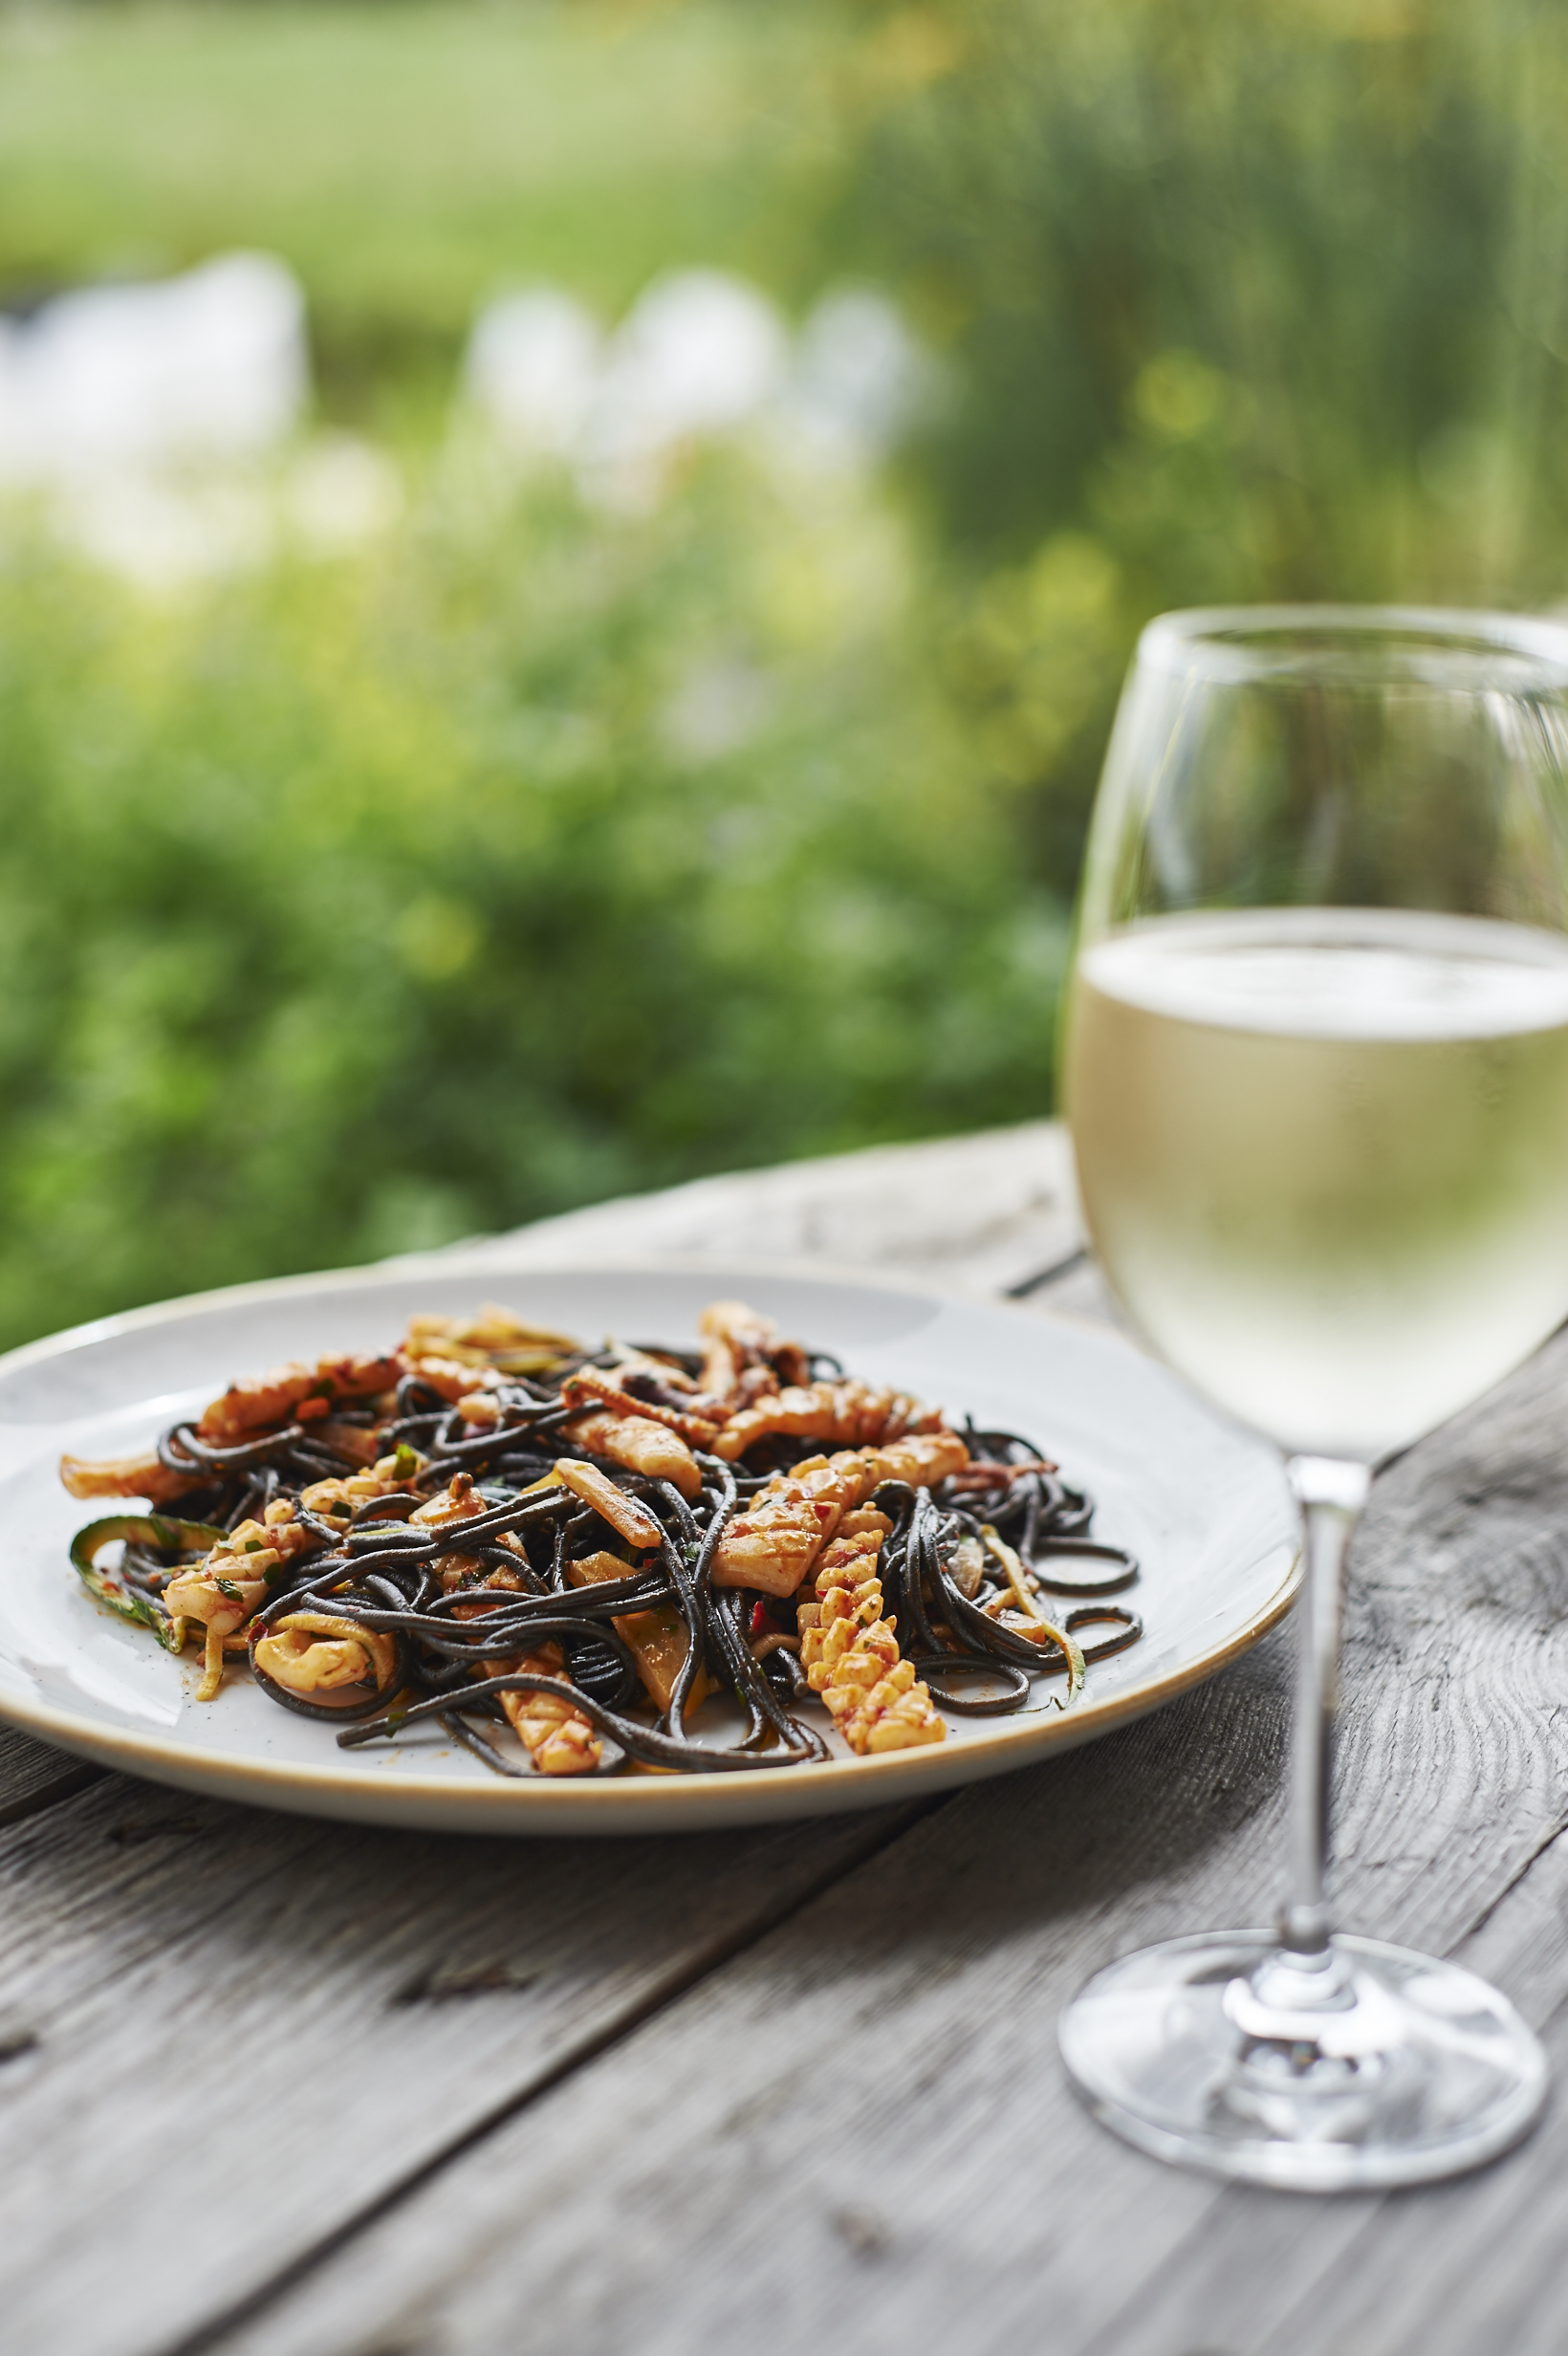 Pasta and Wine at Trevibban Mill & Appleton's at the Vineyard